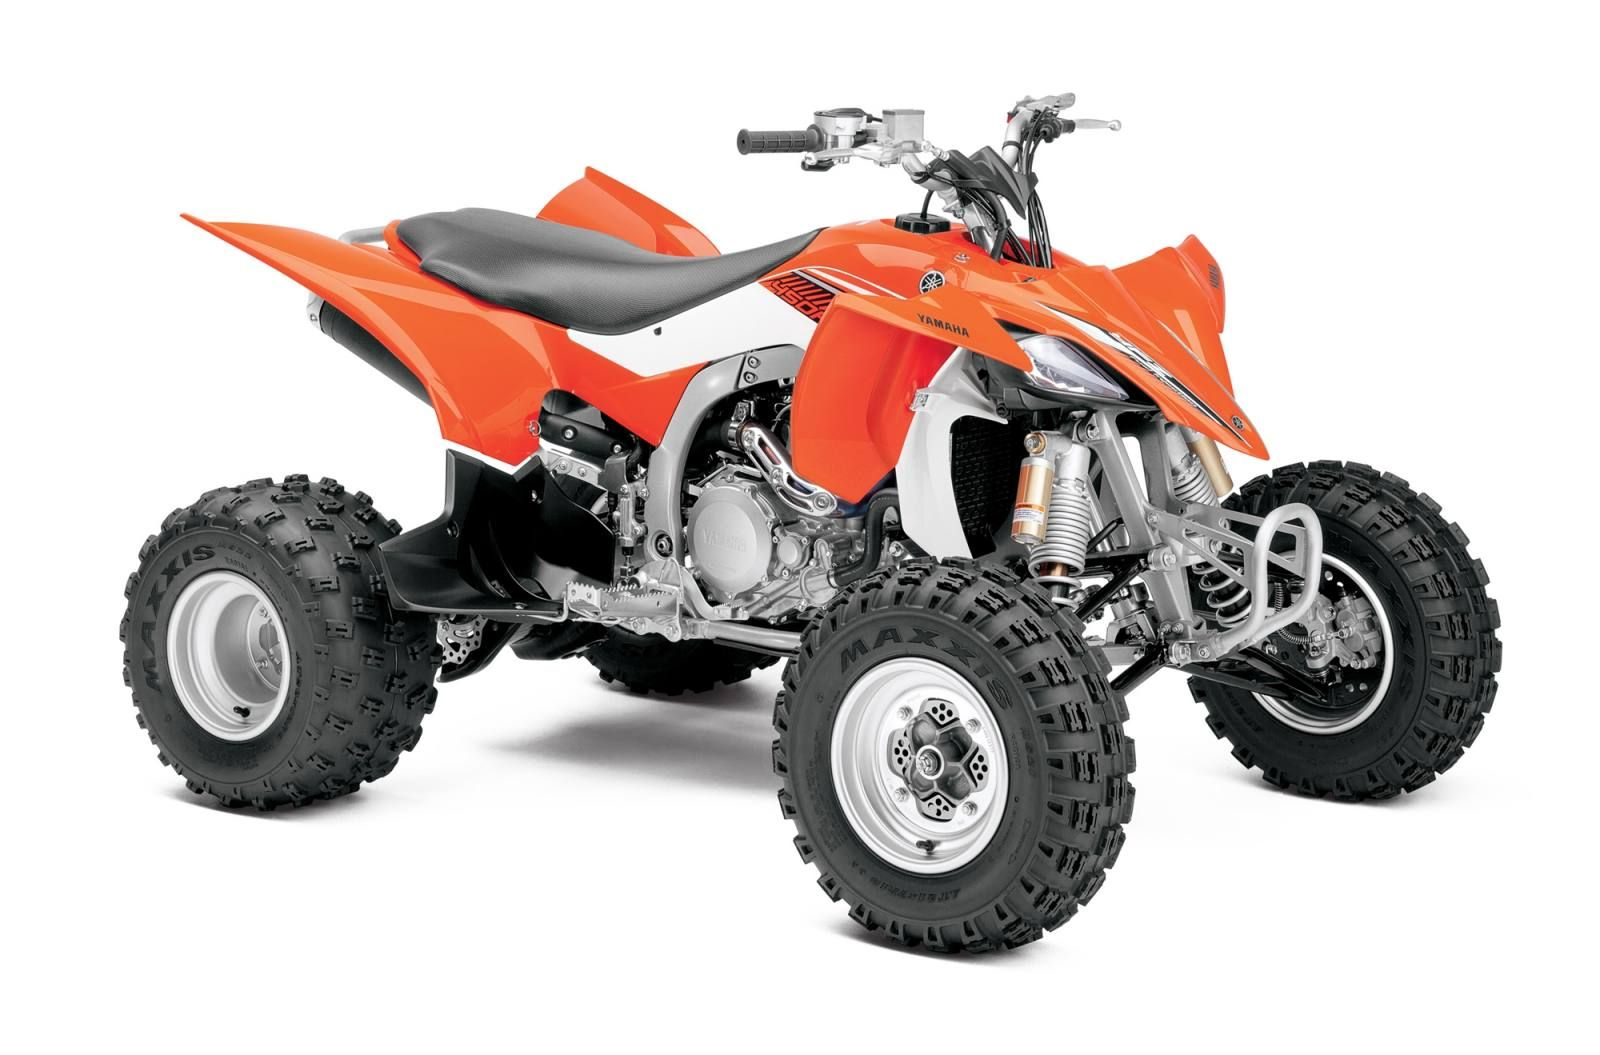 The Original And Ultimate Race Ready 450cc Class Sport Atv Wears The Ama Atv Mx Crown And Is Now Assembled In The Usa Atv Yamaha Sport Atv